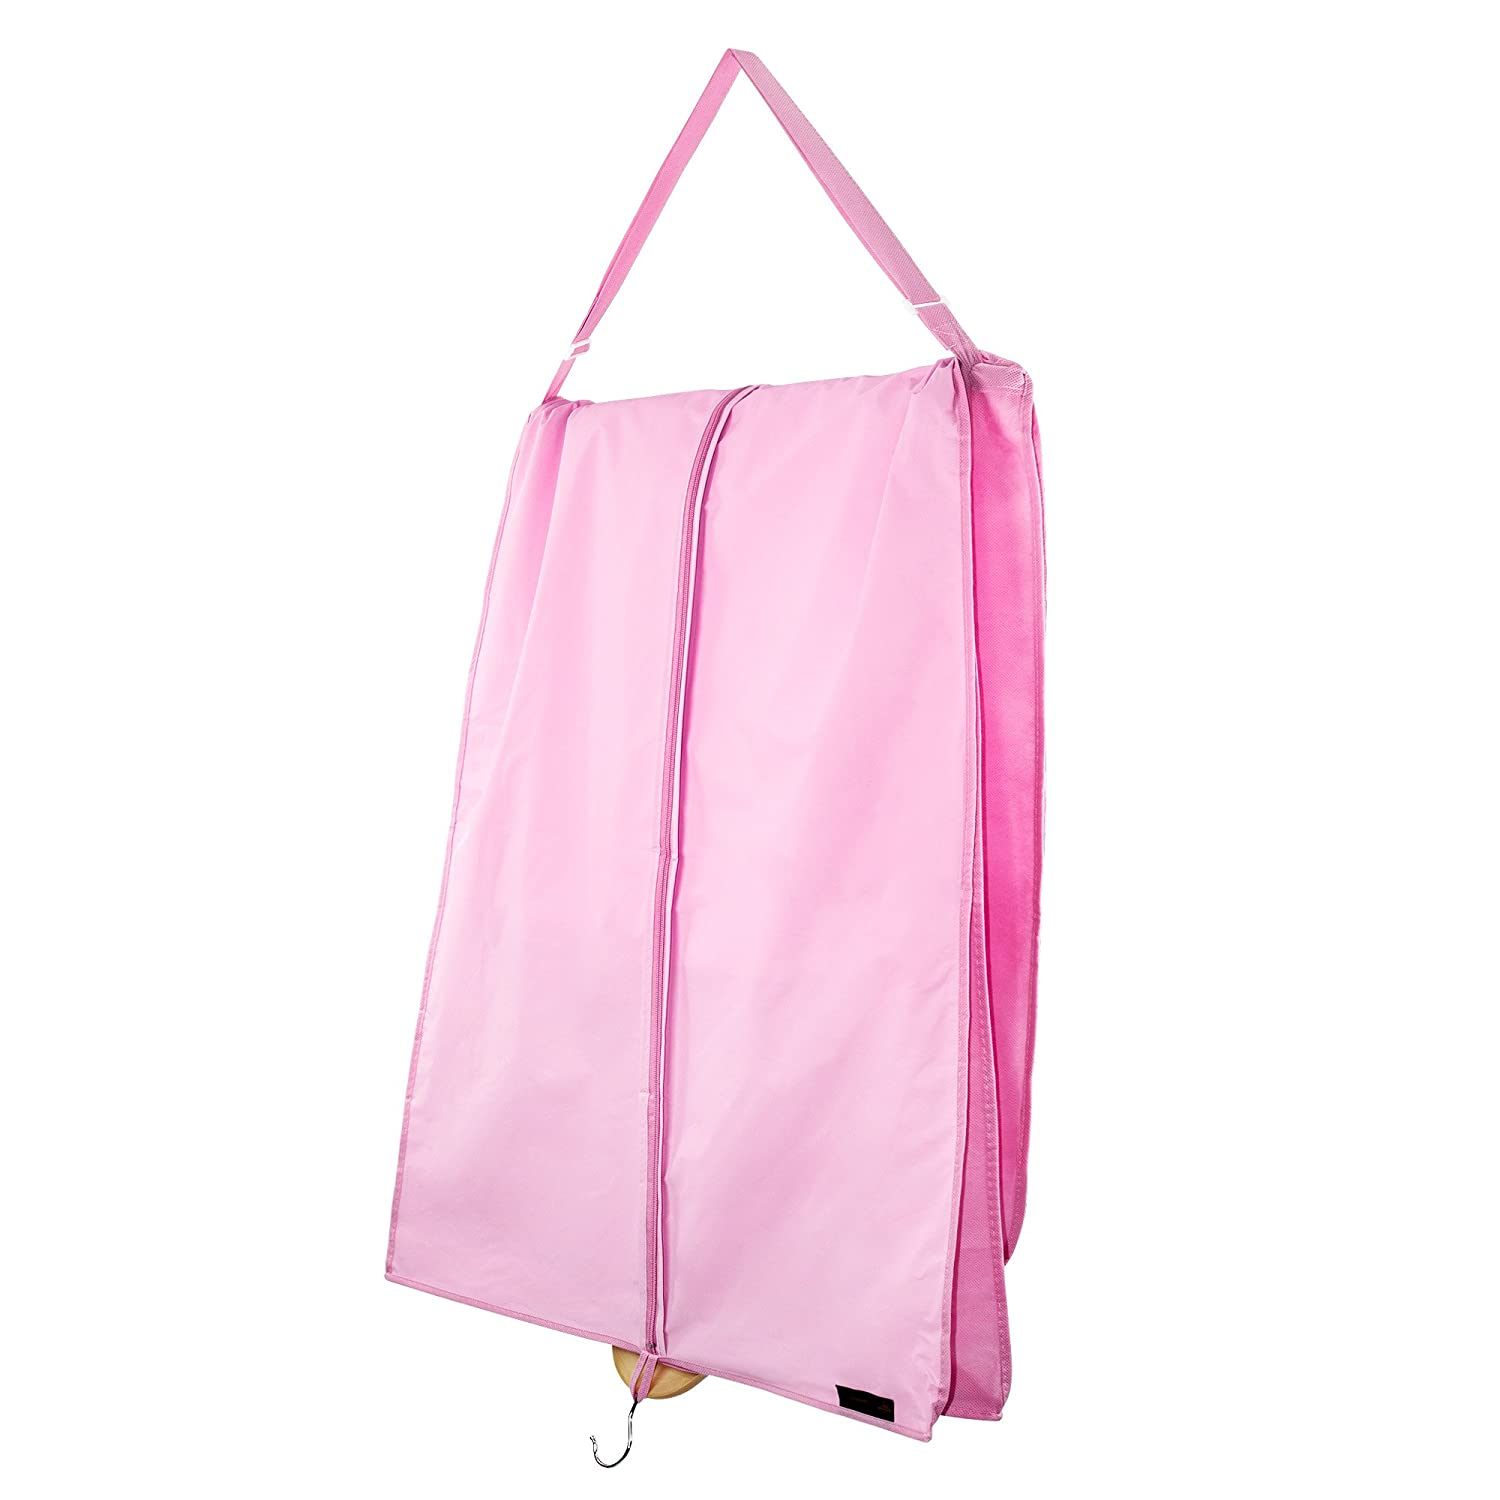 Amazon.com: Hangerworld Single Pink Dress & Gown Bag with Carry ...